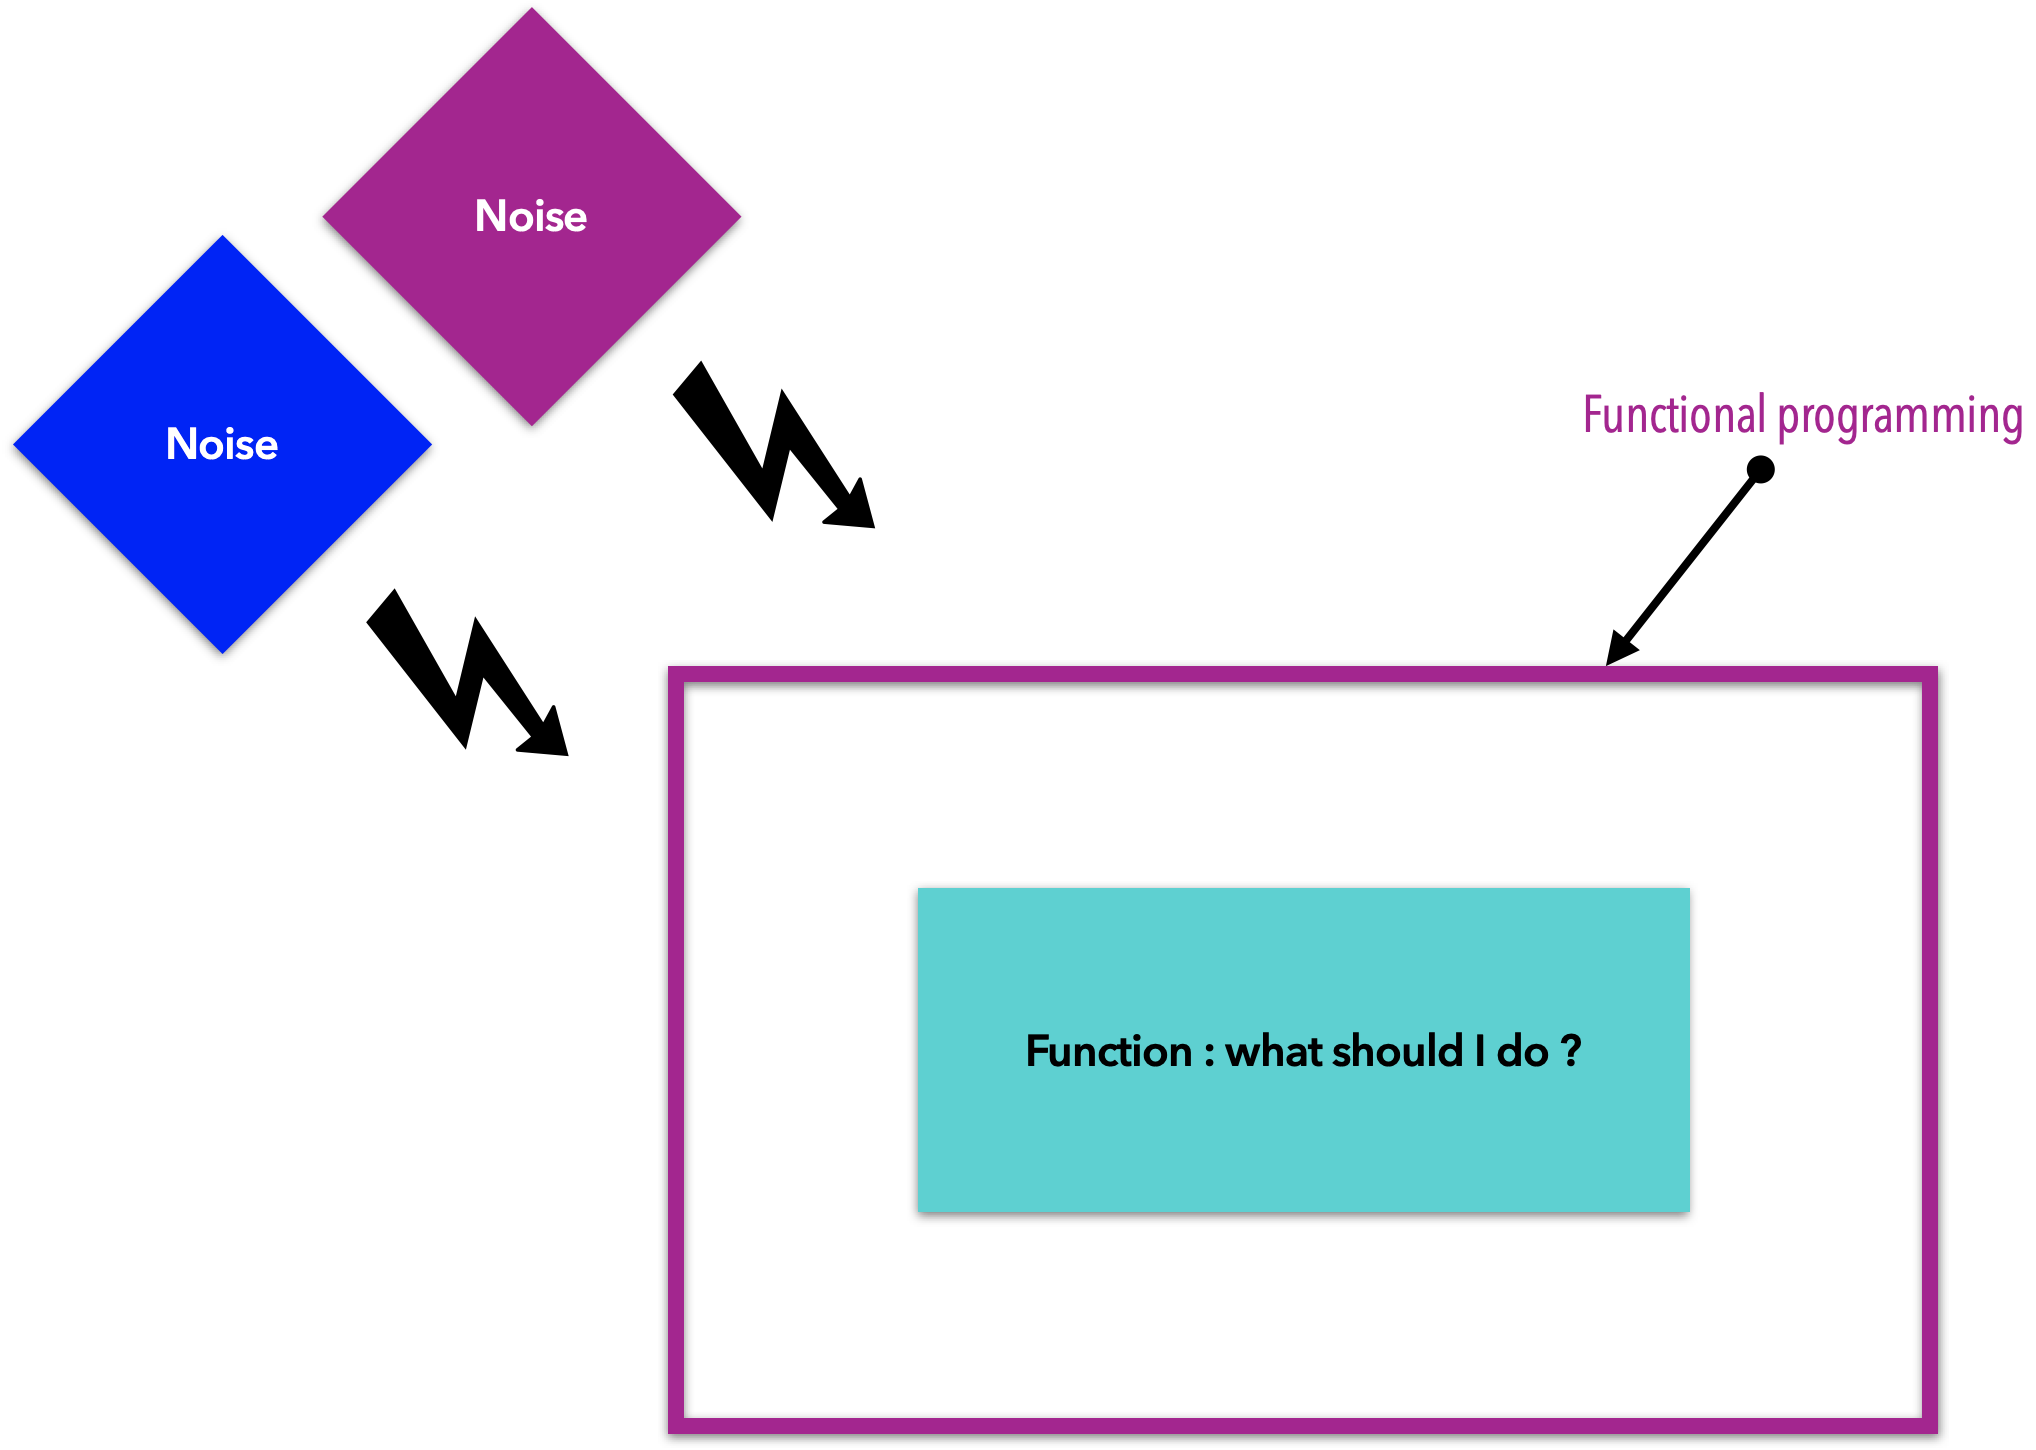 How functional programming filters out all external noise